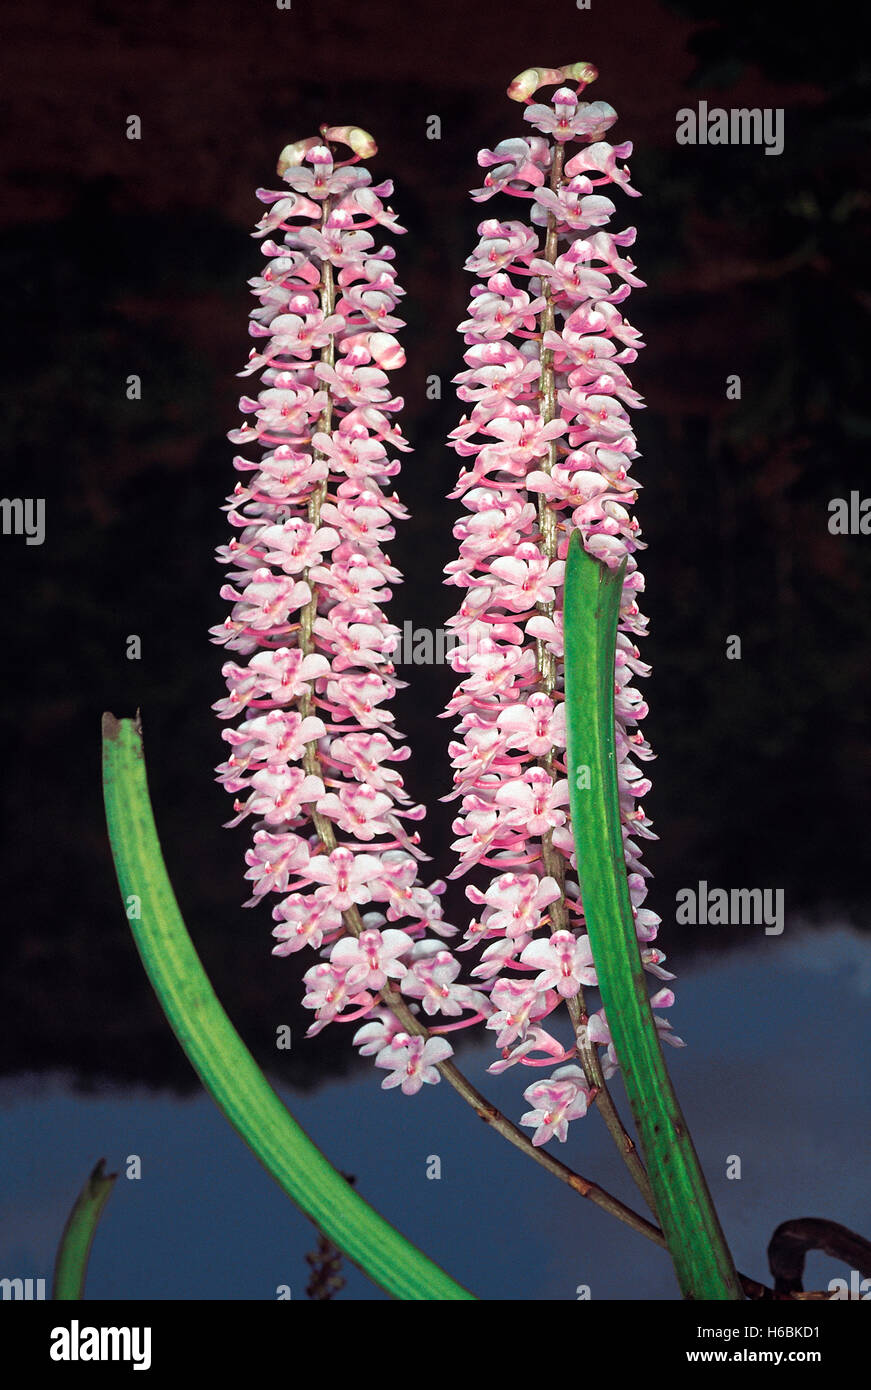 A well-known epiphytic orchid commonly known as the Foxtail orchid. Rhynchostylis Retusa. Family: Orchidaceae - Stock Image